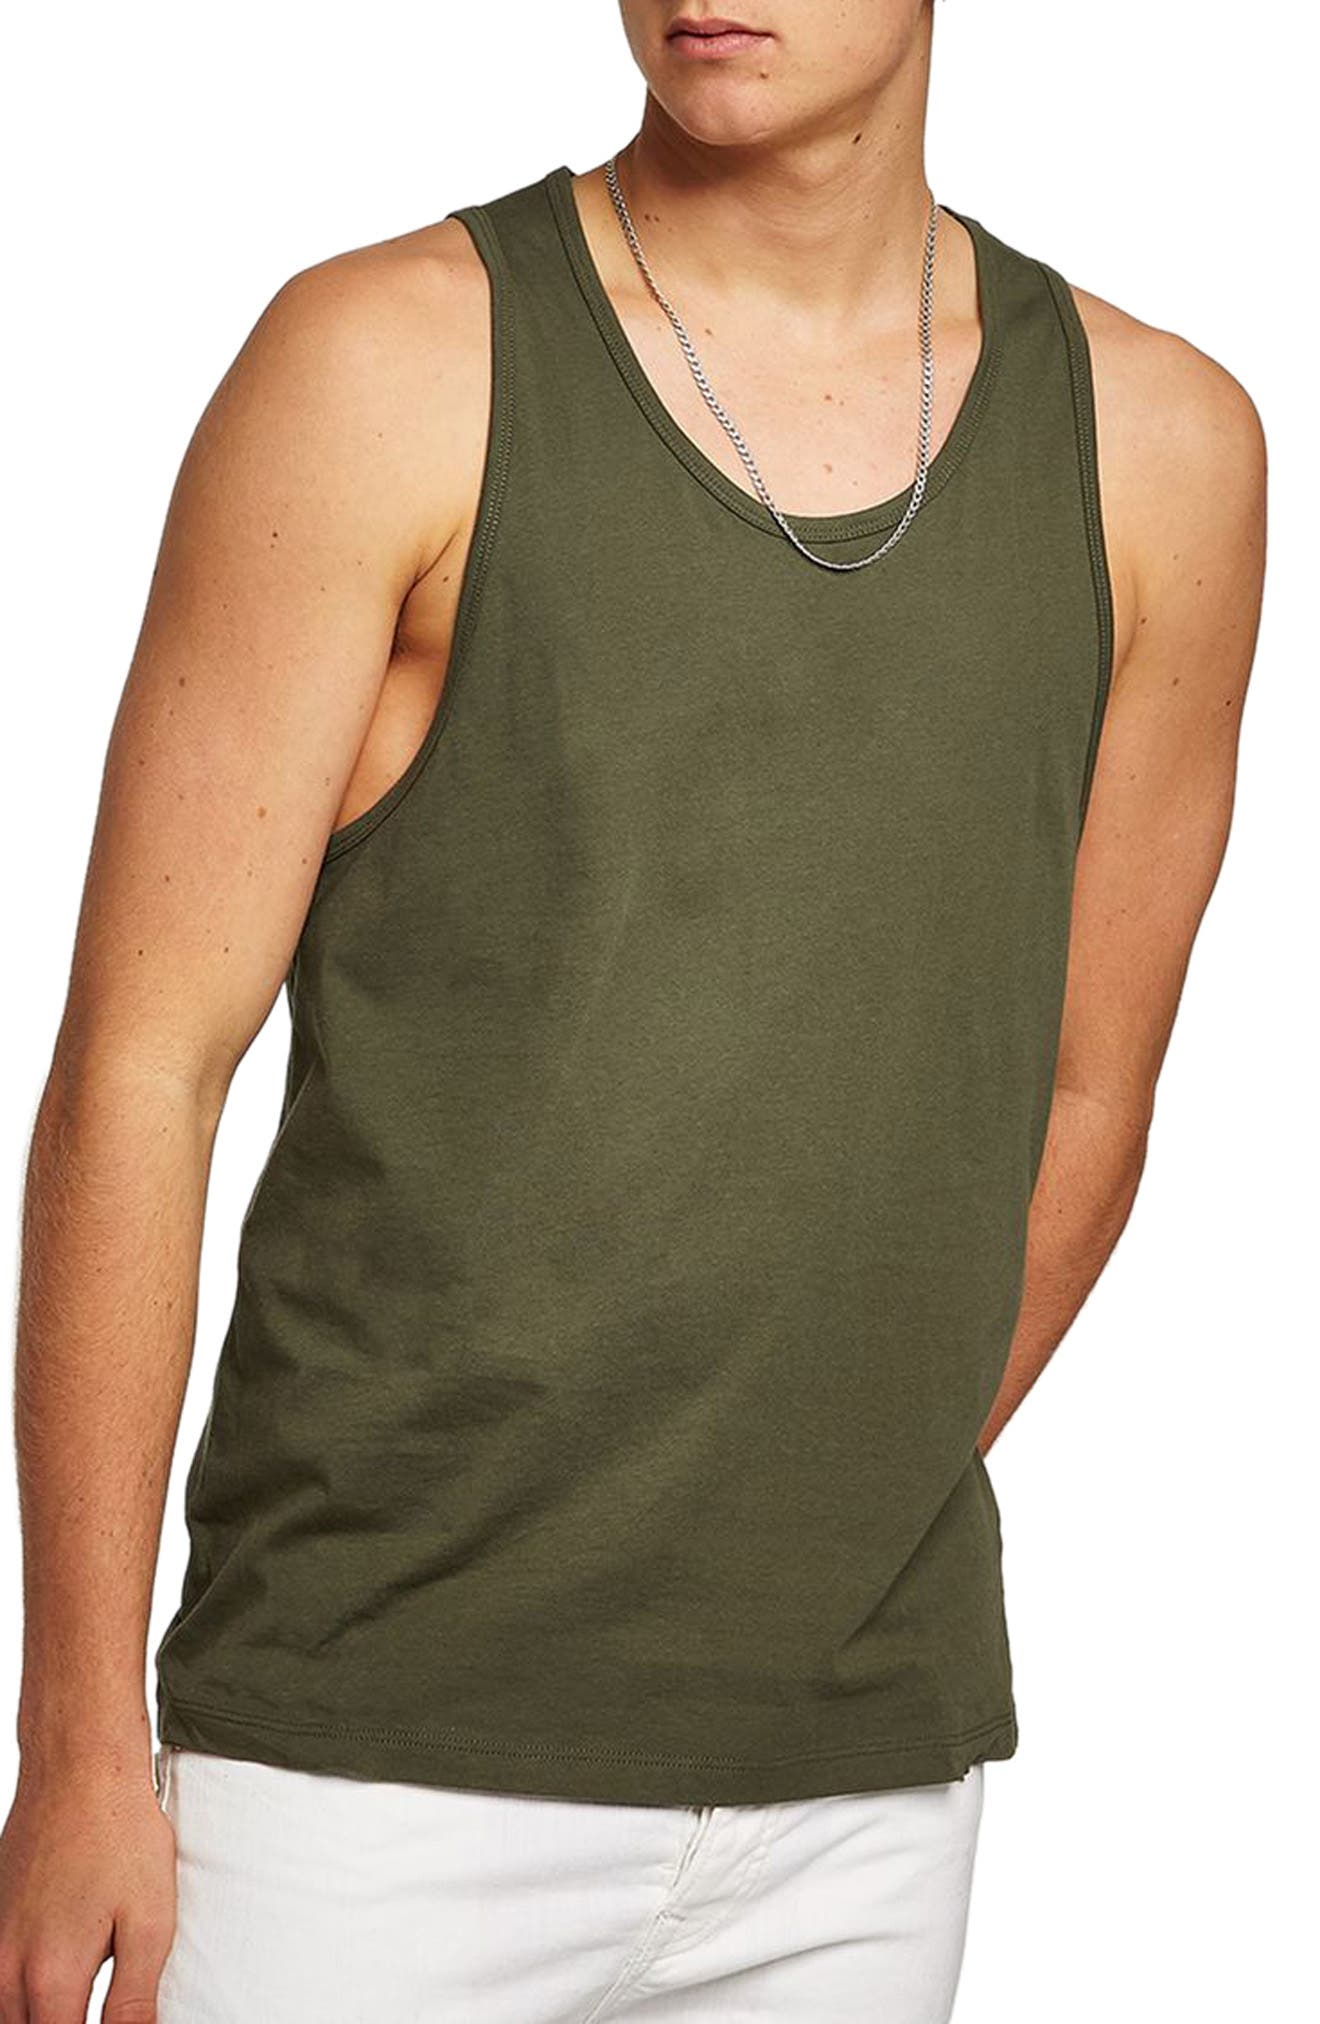 Topman Slim Fit Tank